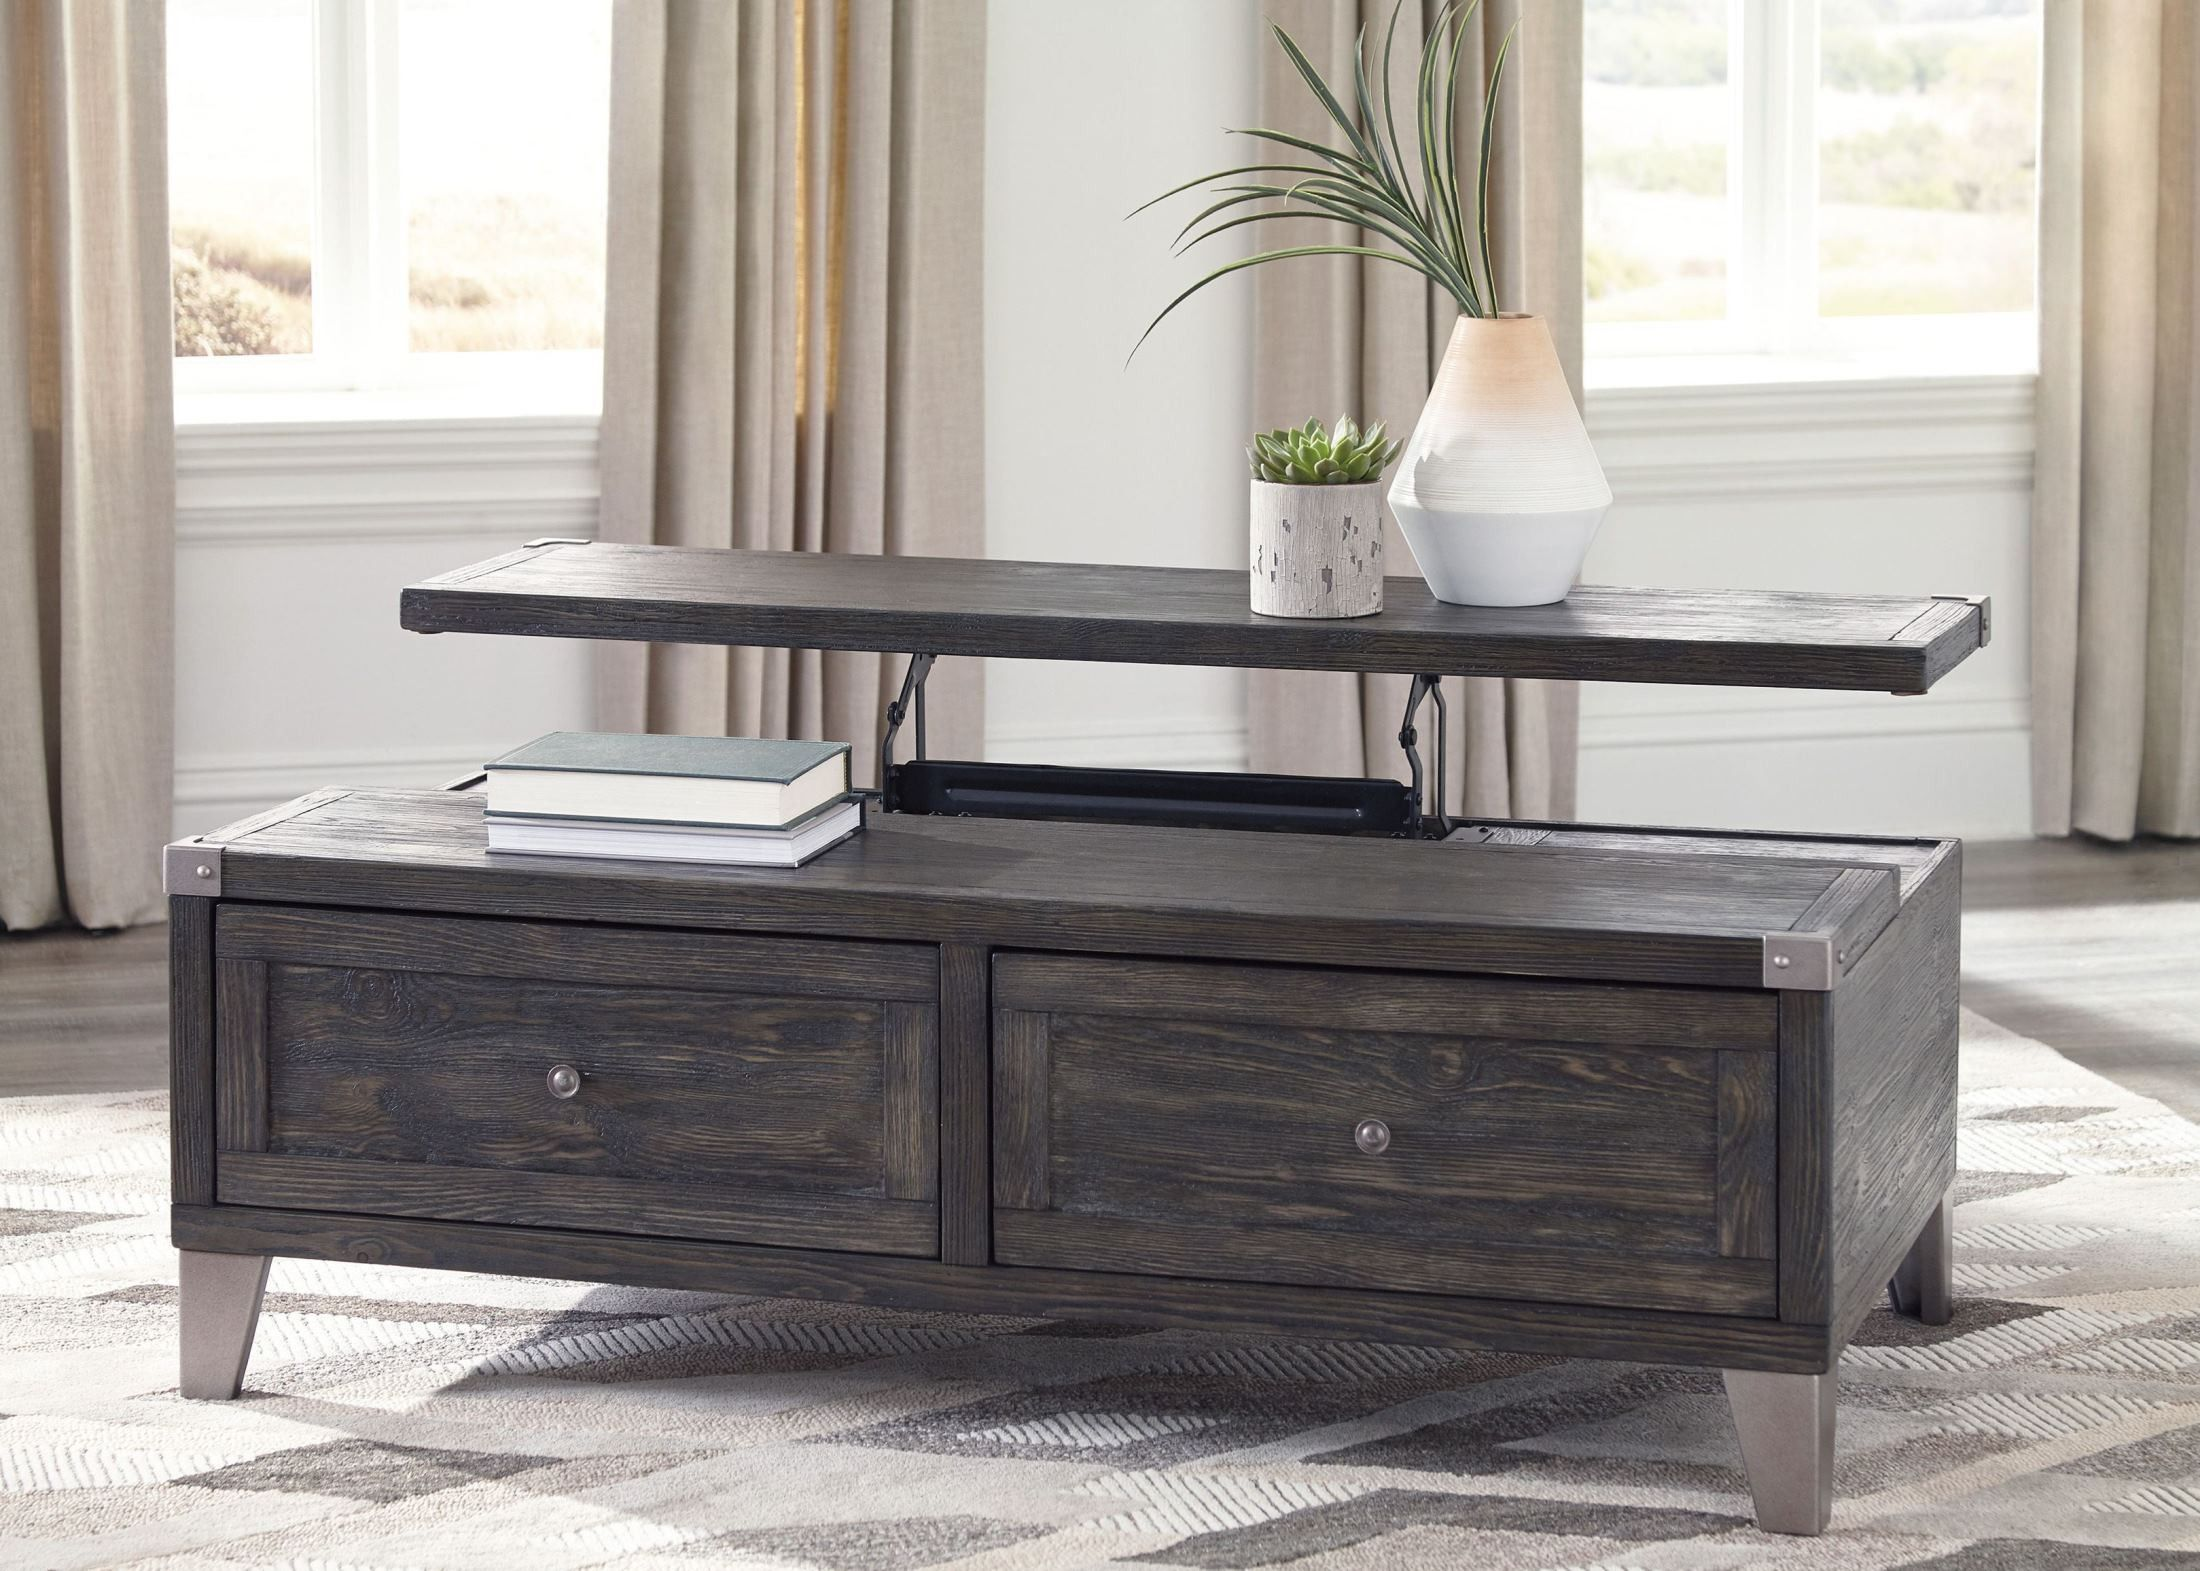 Todoe Dark Gray Lift Top Cocktail Table In 2020 Coffee Table